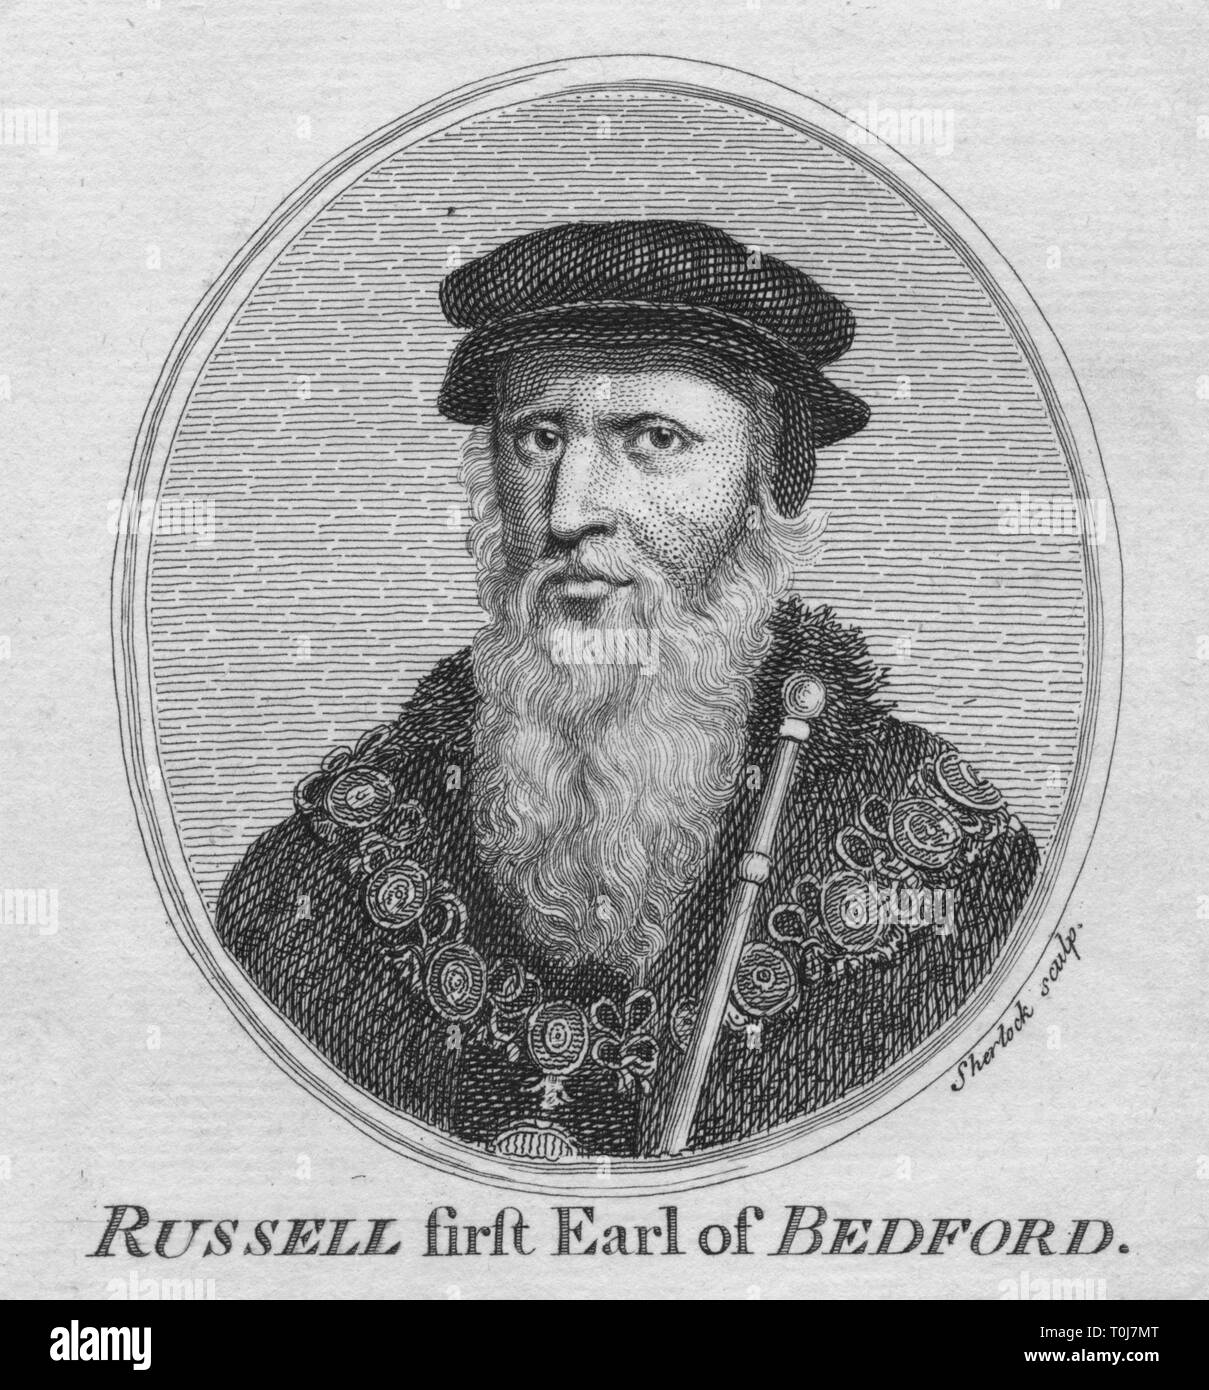 'Russell first Earl of Bedford', (1757). Portrait of English royal minister John Russell, 1st Earl of Bedford (c1485-1555). He held the offices of Lord High Admiral and Lord Privy Seal at the court of King Henry VIII. - Stock Image